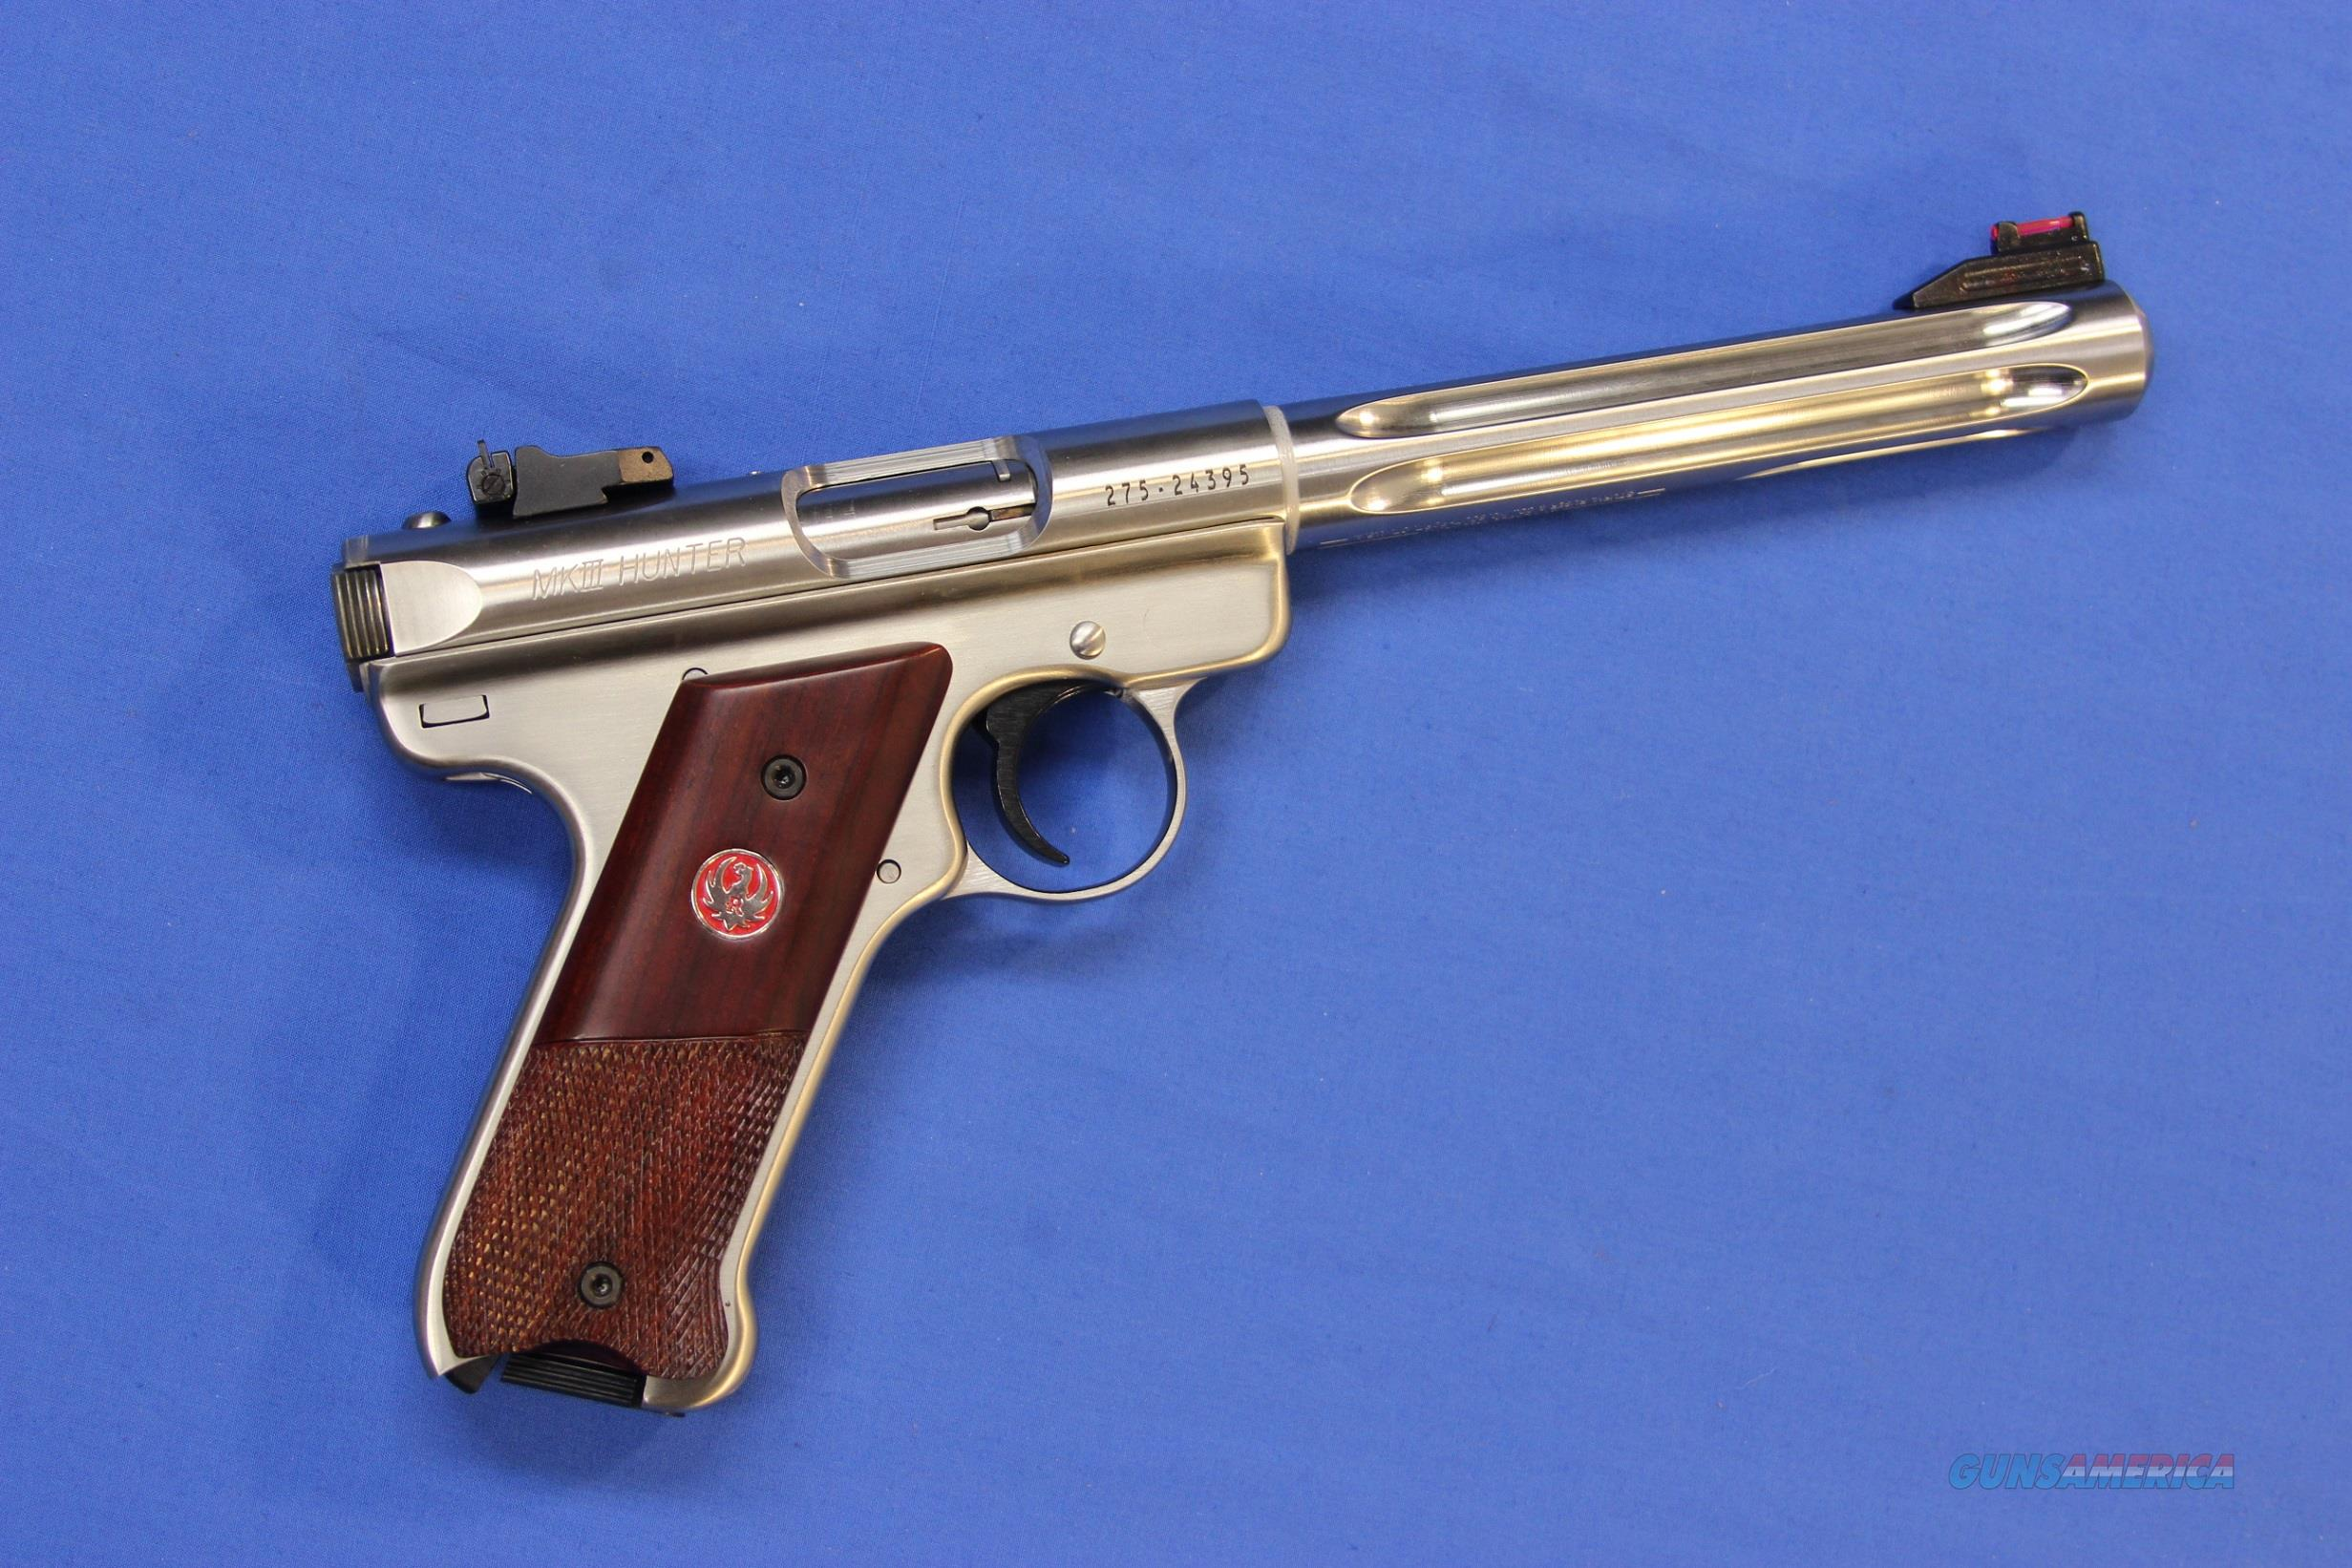 RUGER MARK III TARGET HUNTER .22 LR - NEW!  Guns > Pistols > Ruger Semi-Auto Pistols > Mark I/II/III Family